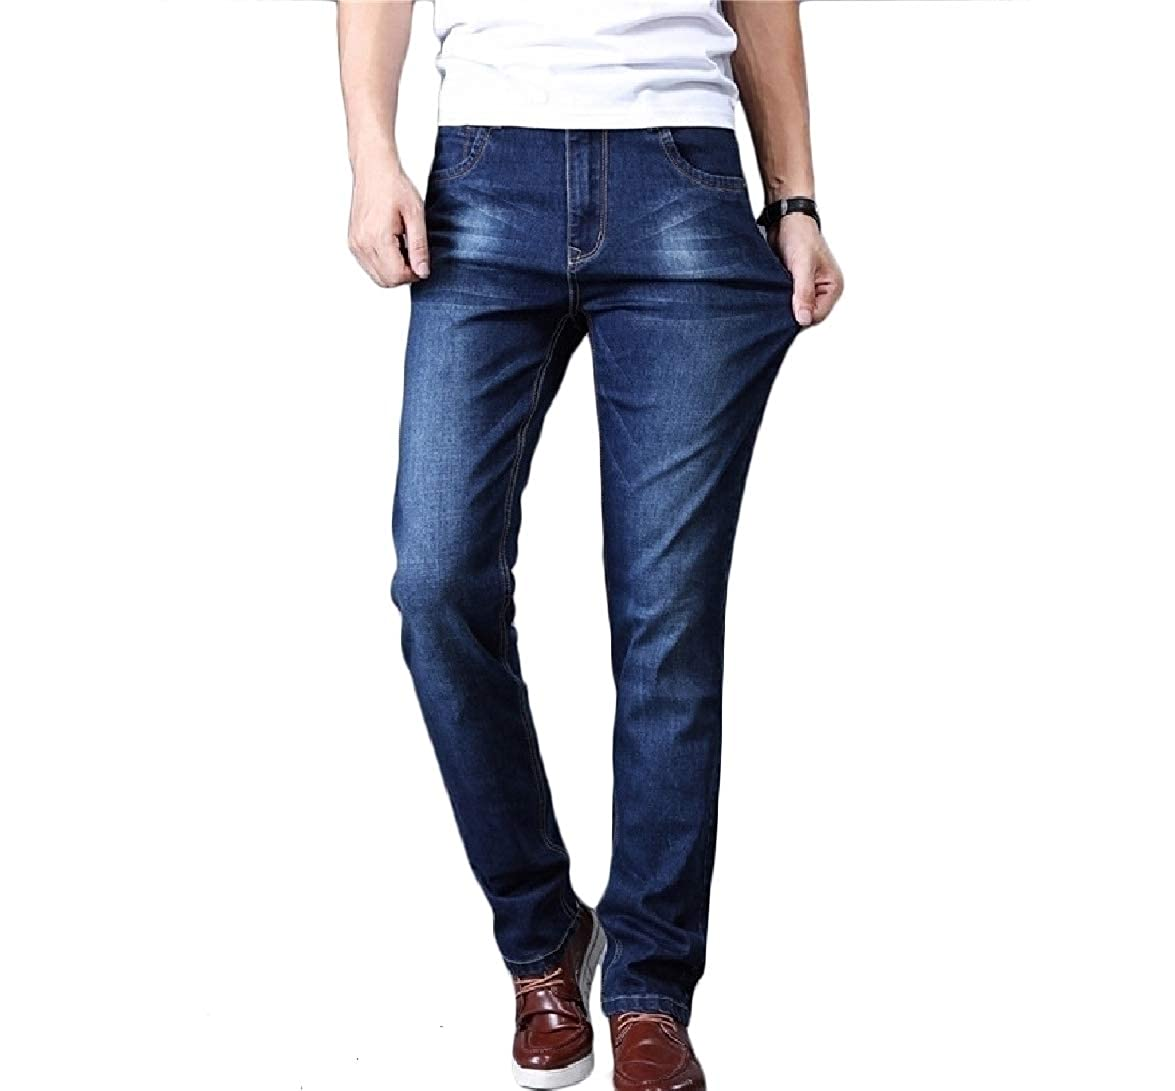 Tootless-Men Long Pants Silm Fit Washed Oversize Straight Athletic-Fit Jean